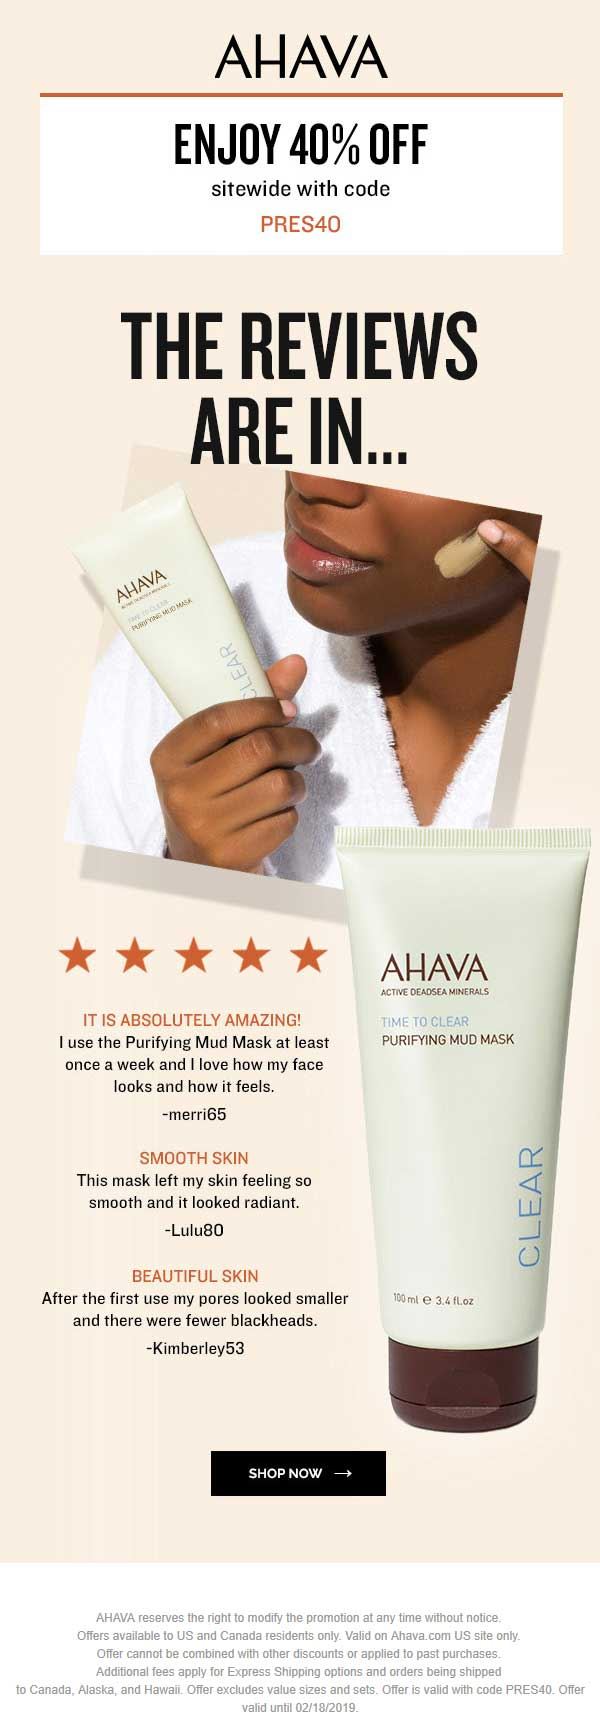 AHAVA Coupon July 2019 40% off everything online at AHAVA via promo code PRES40